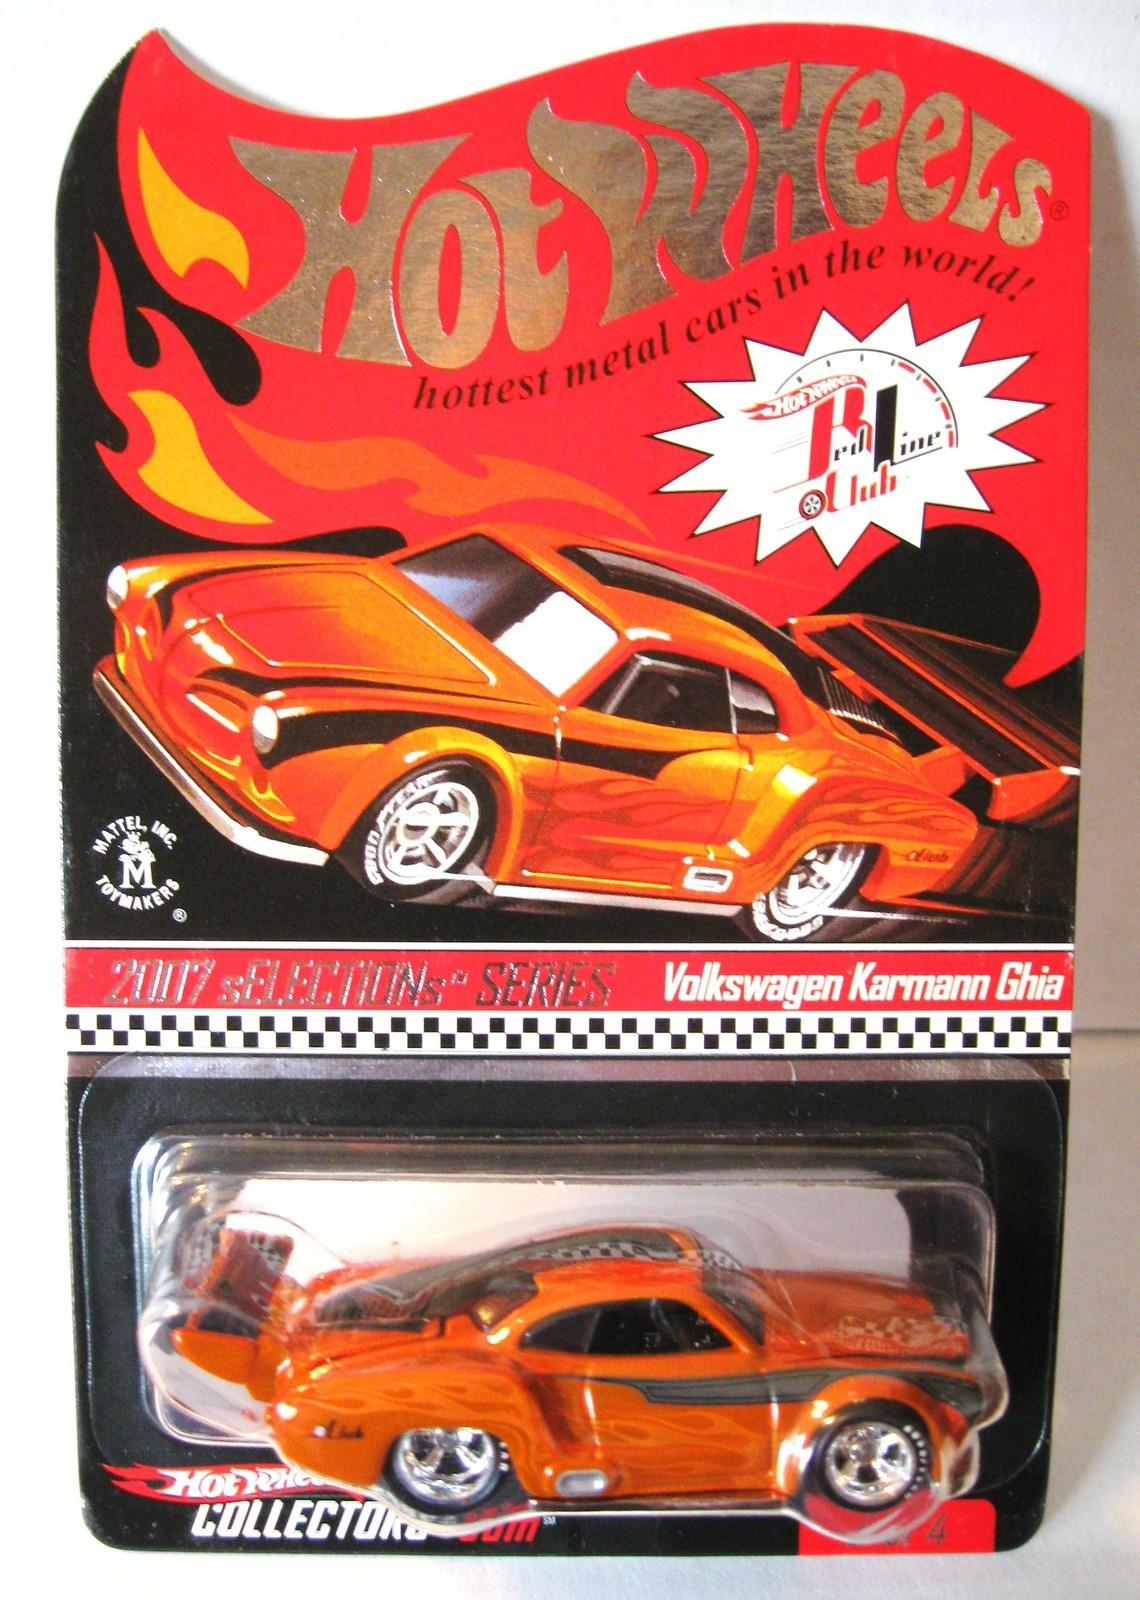 VW Karmann Ghia Red Line Club sELECTIONs Series (2007)